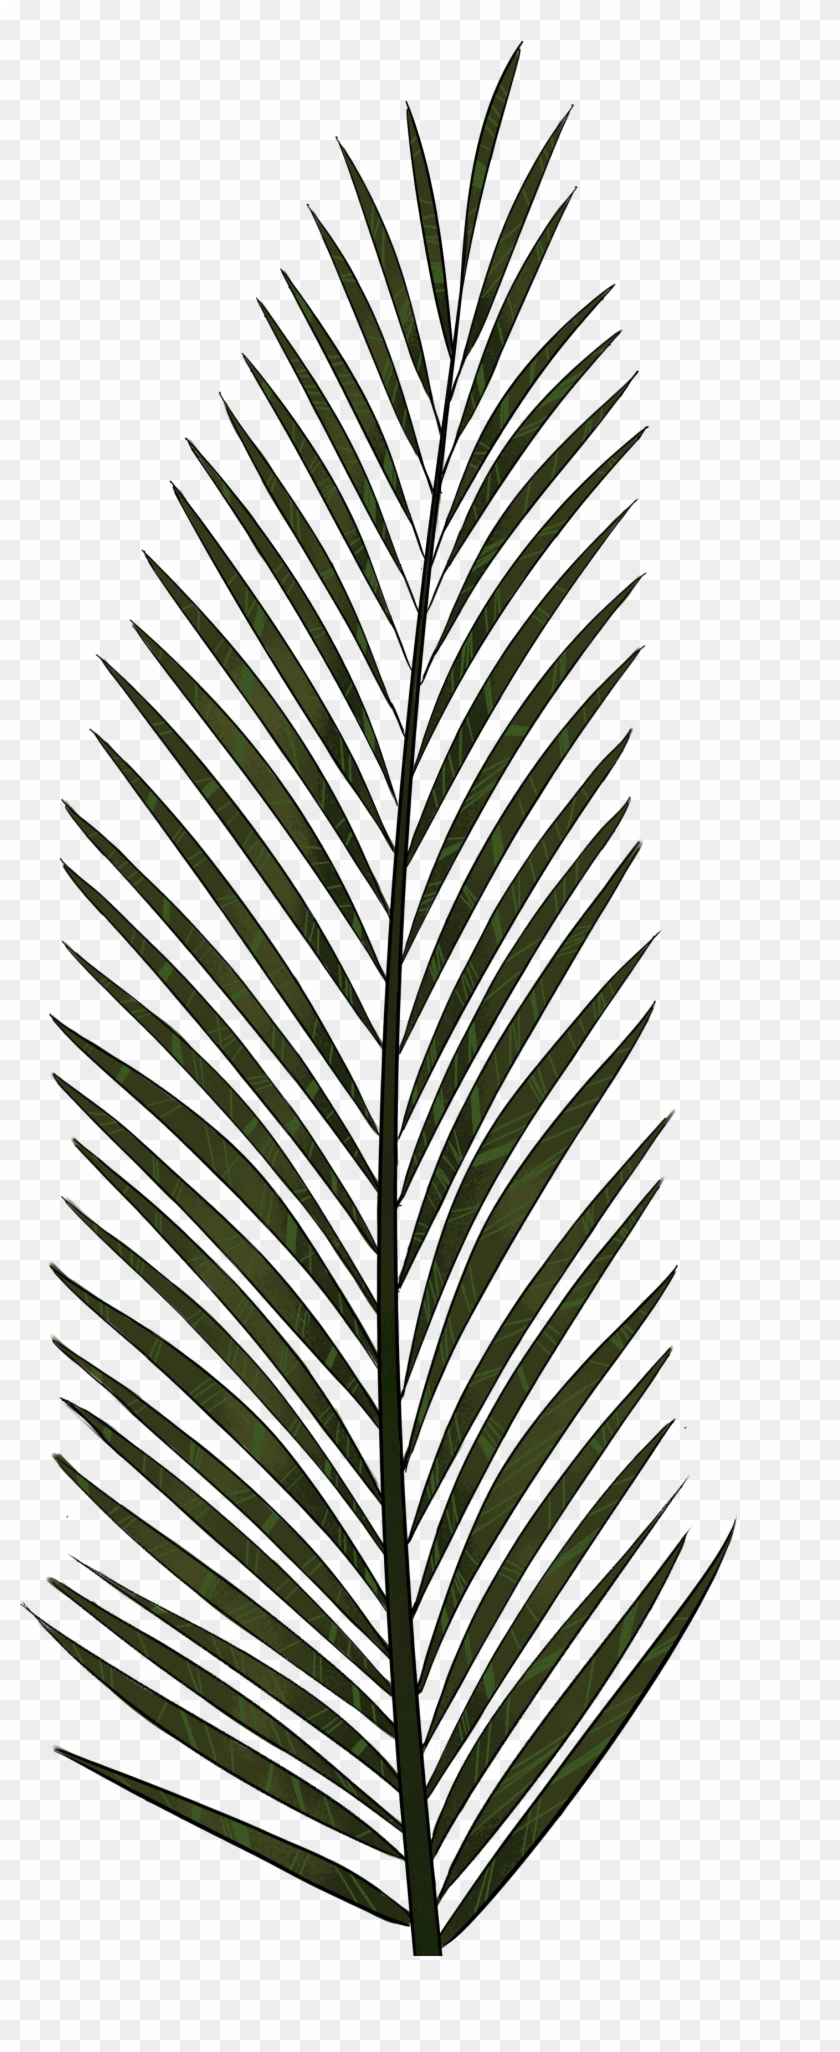 Palm Leaf Png Textures And Style Radin Mas - Palm Trees #25341